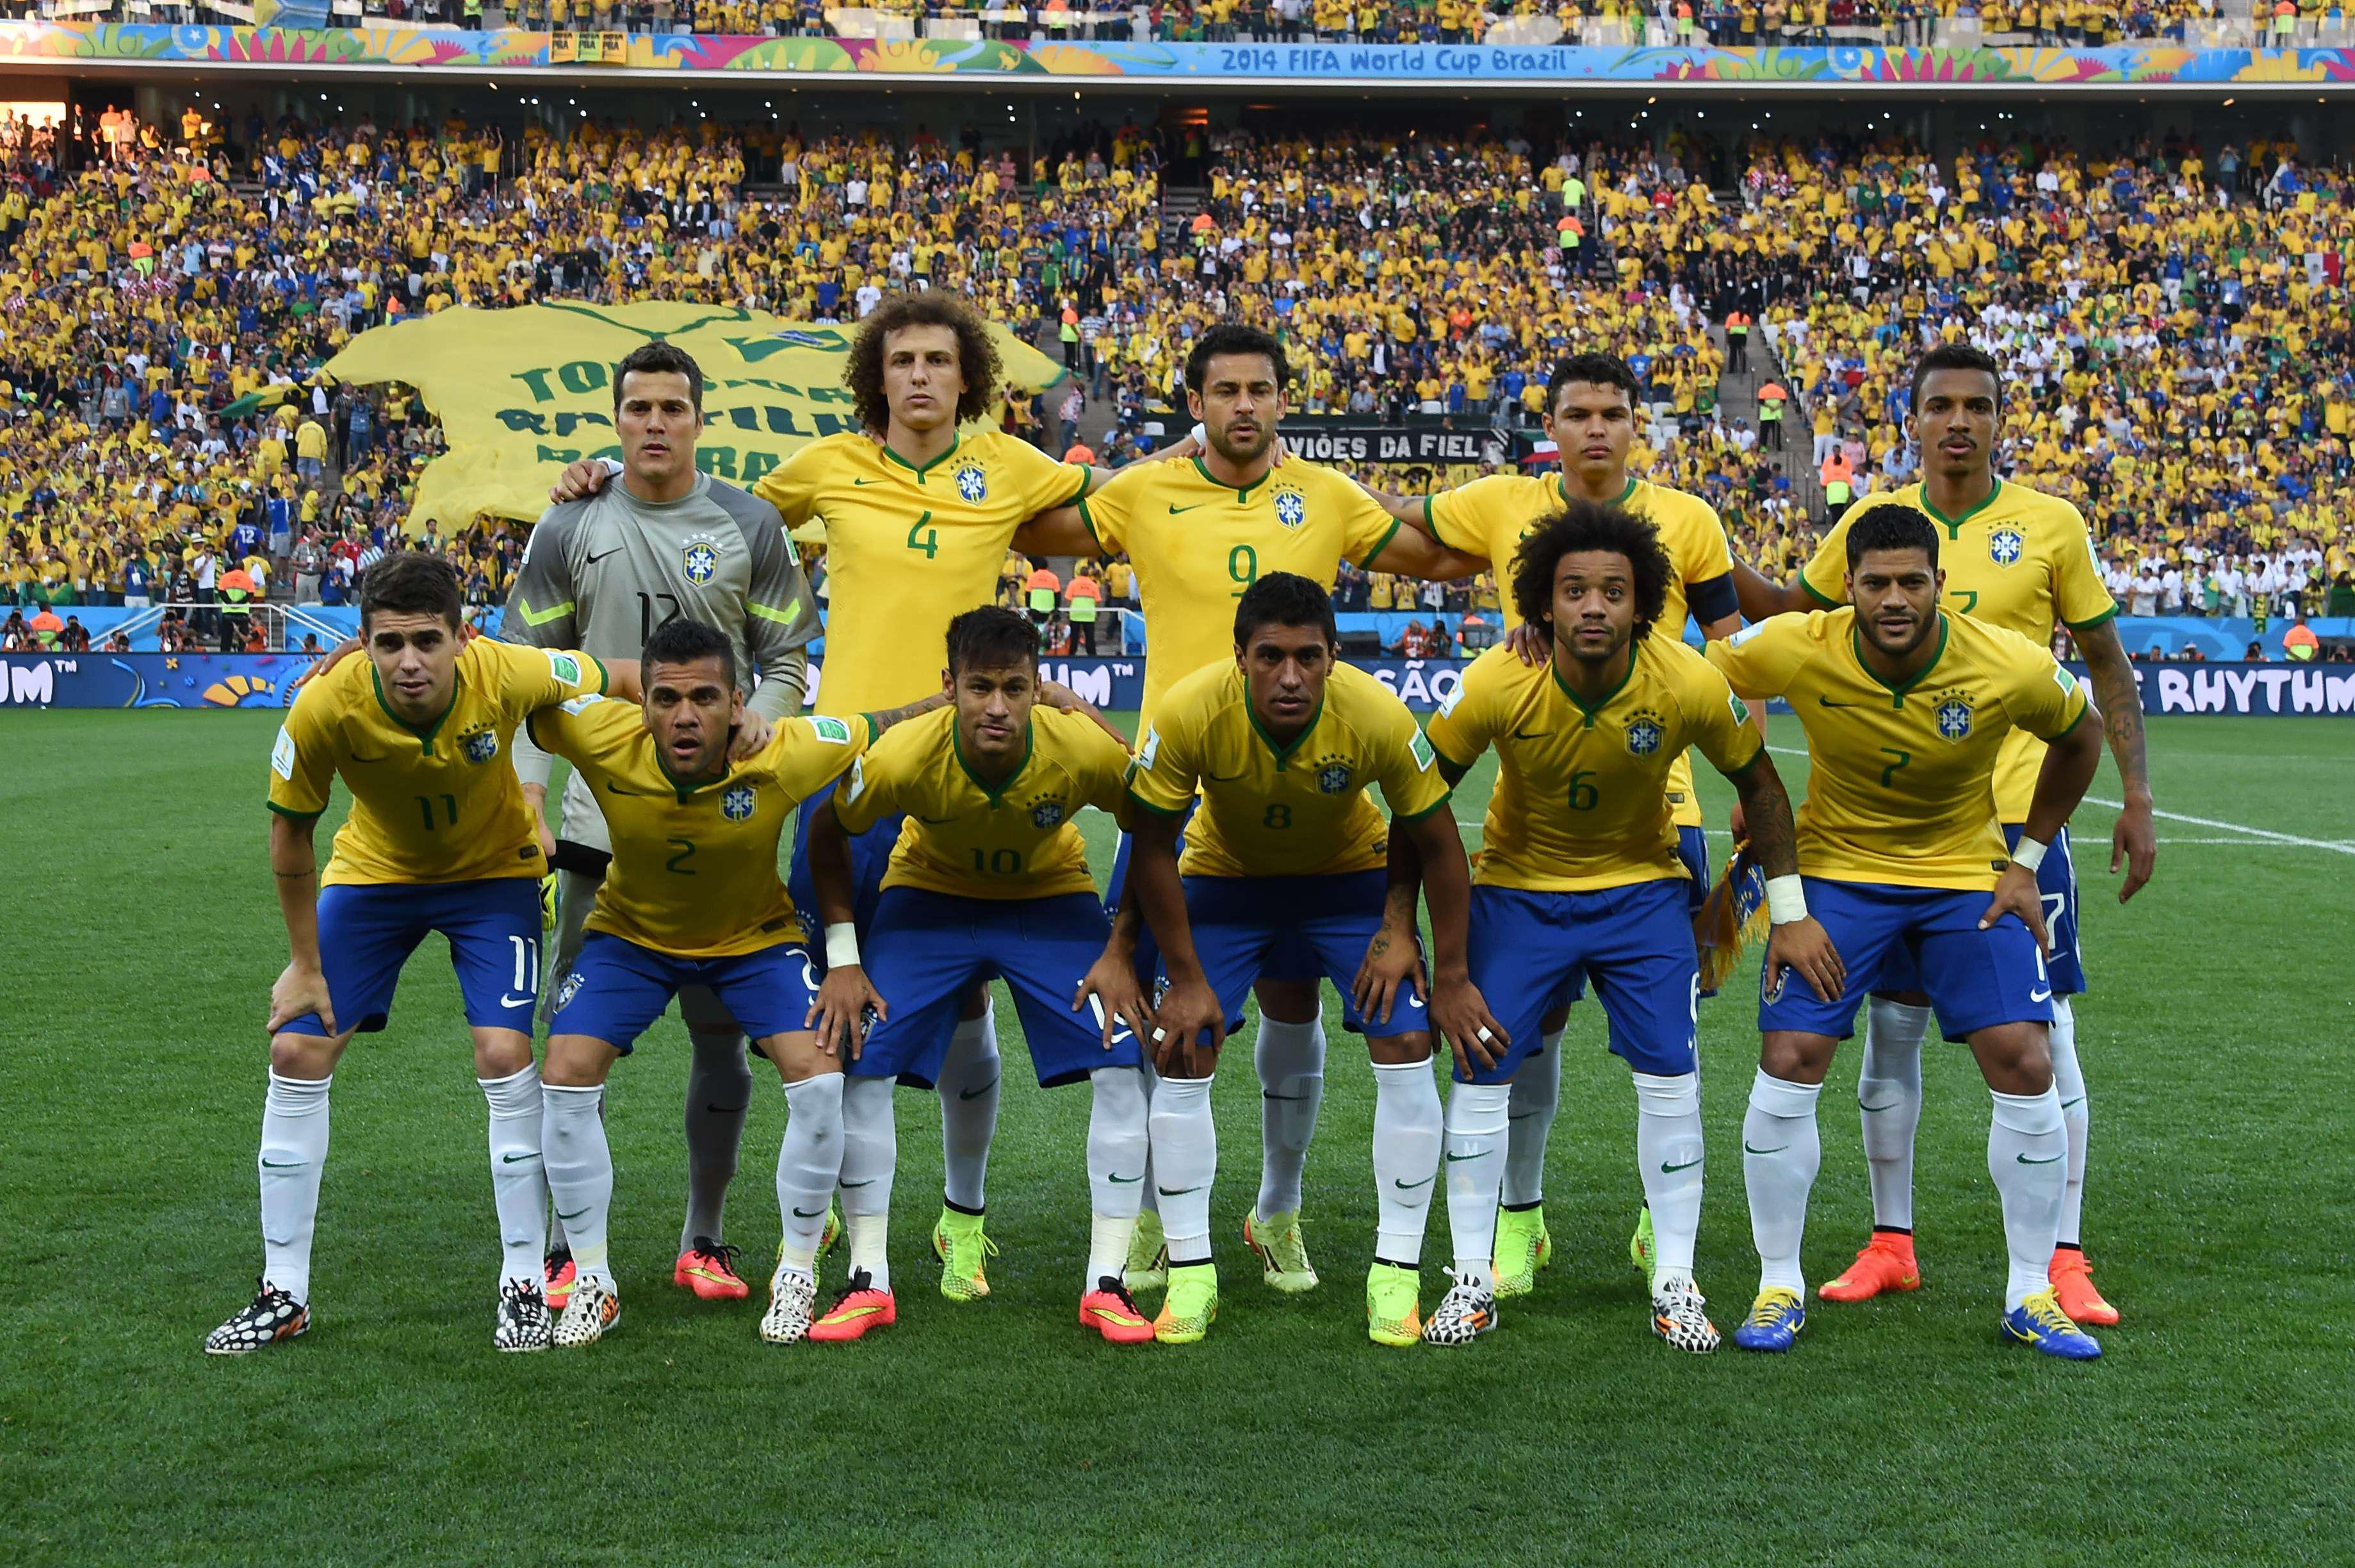 Alves and Gustavo line up together for Brazil at the last World Cup